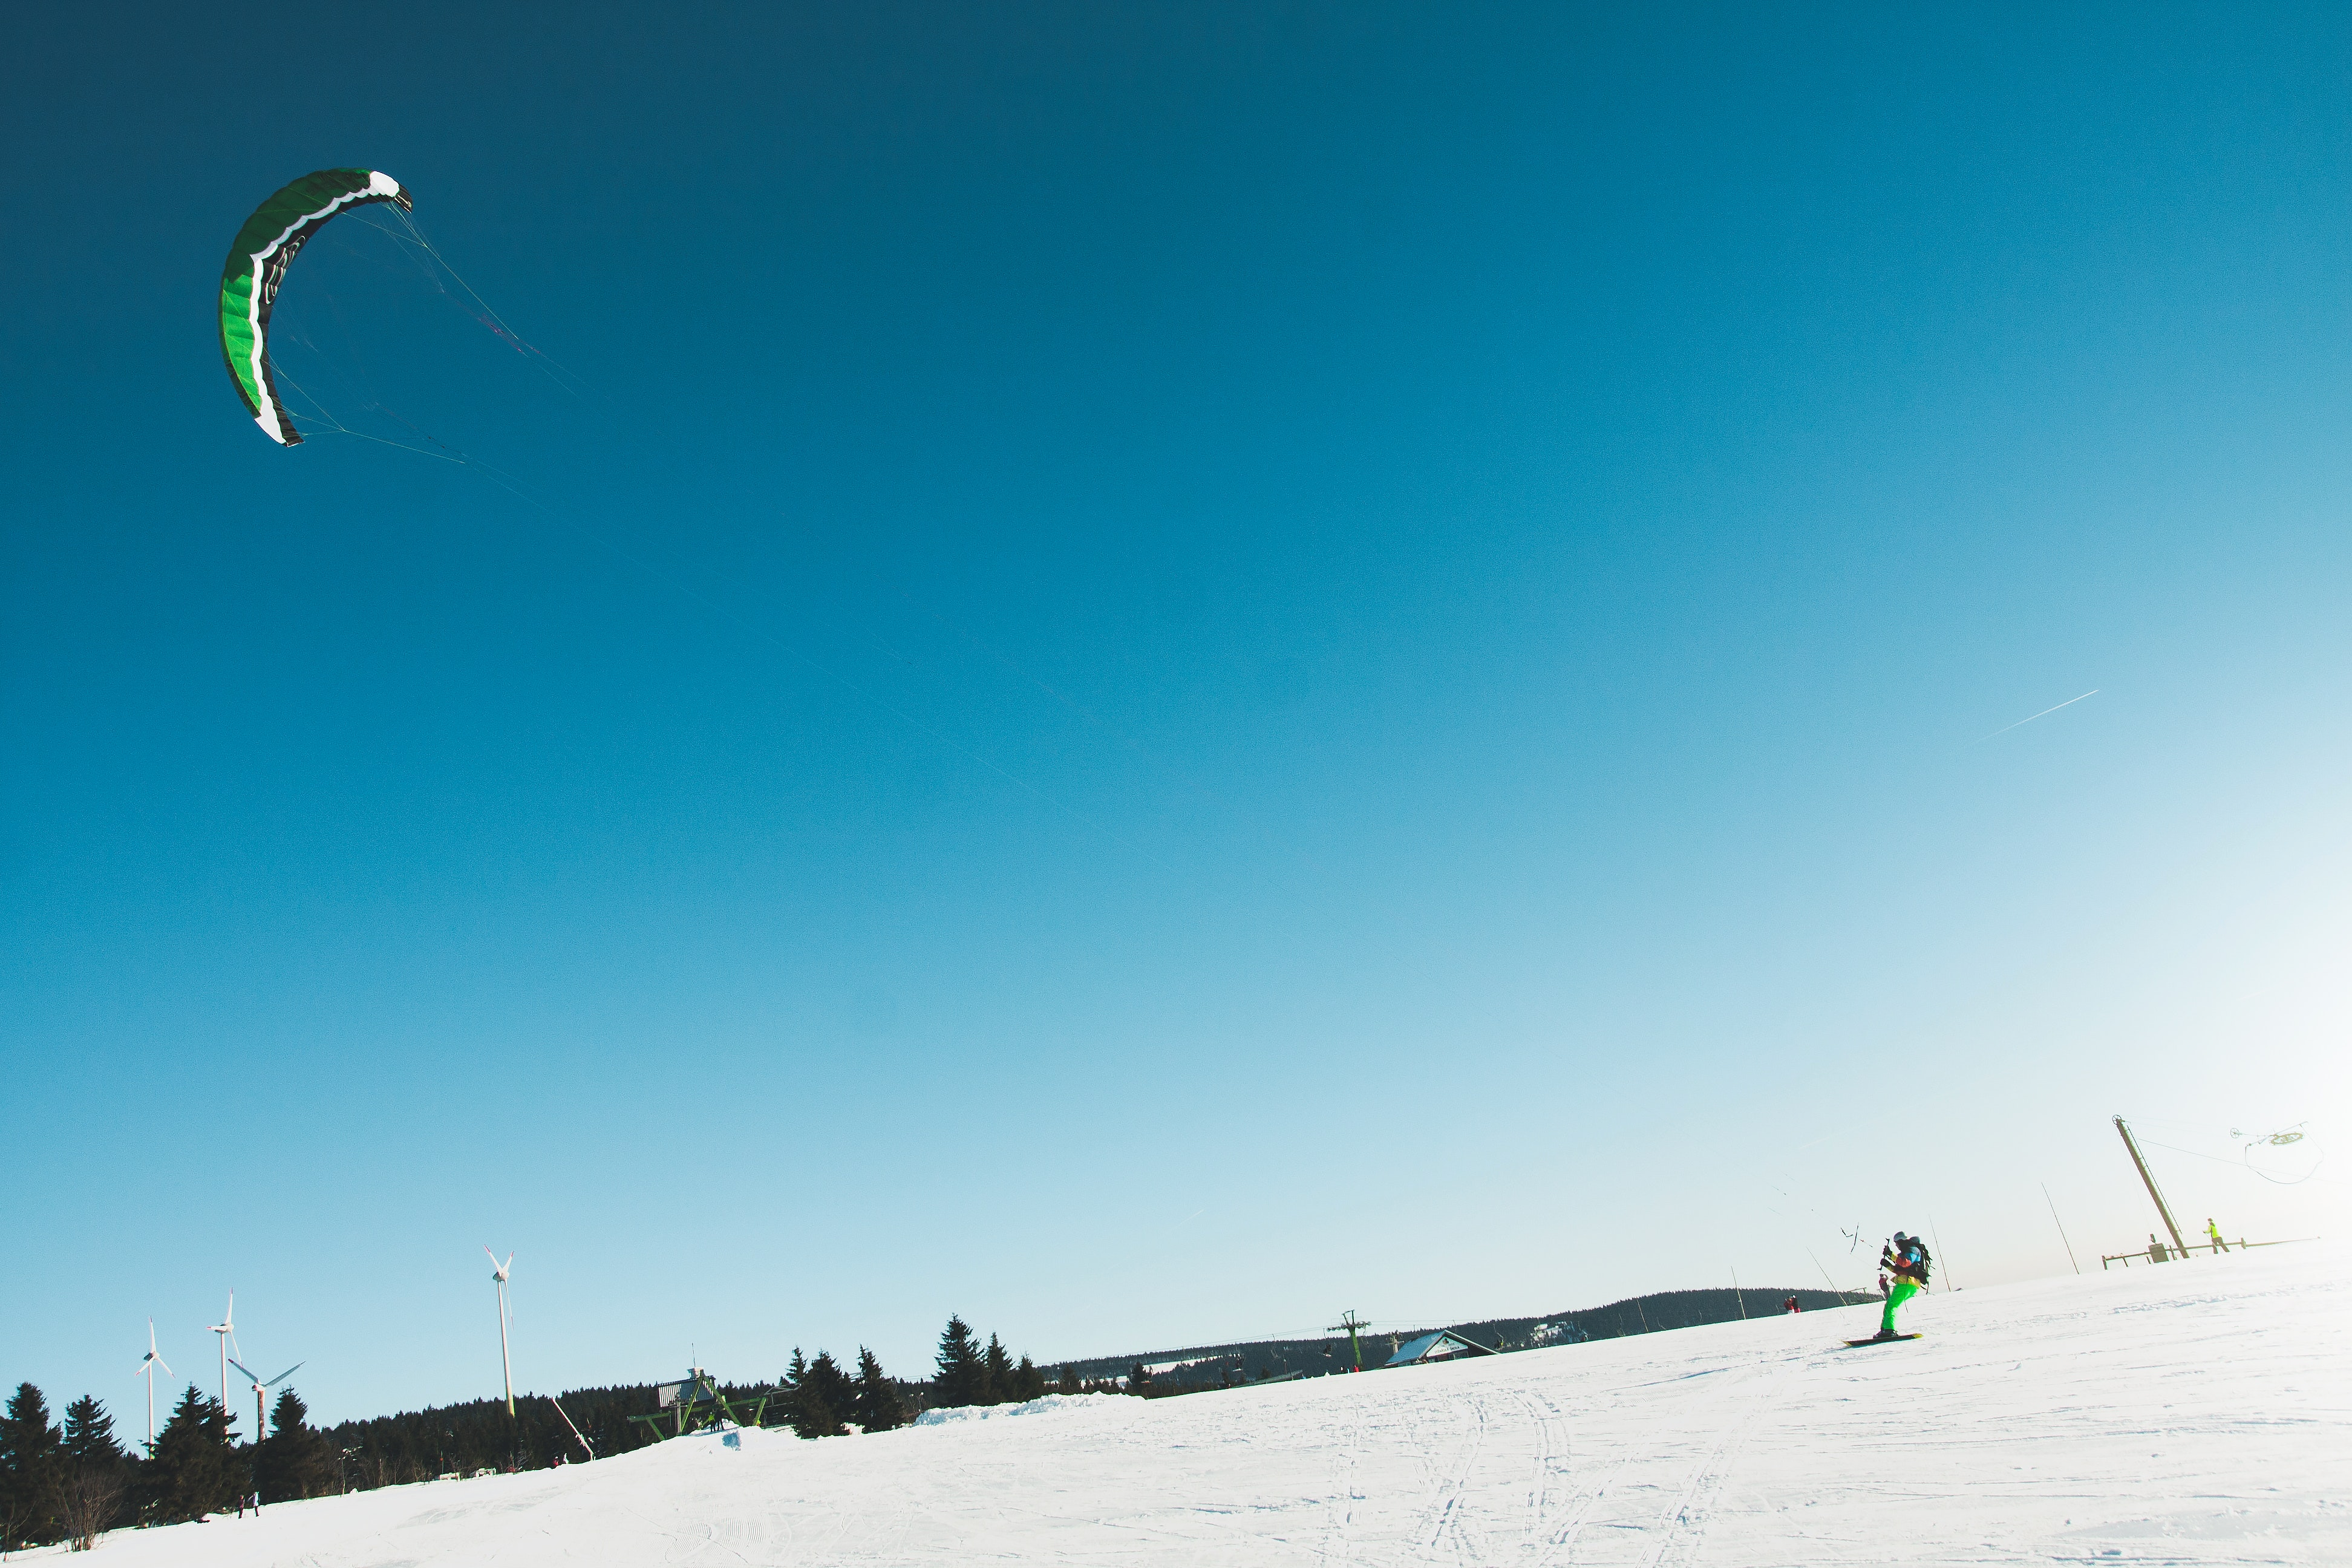 Man skiing on snow covered landscape photo